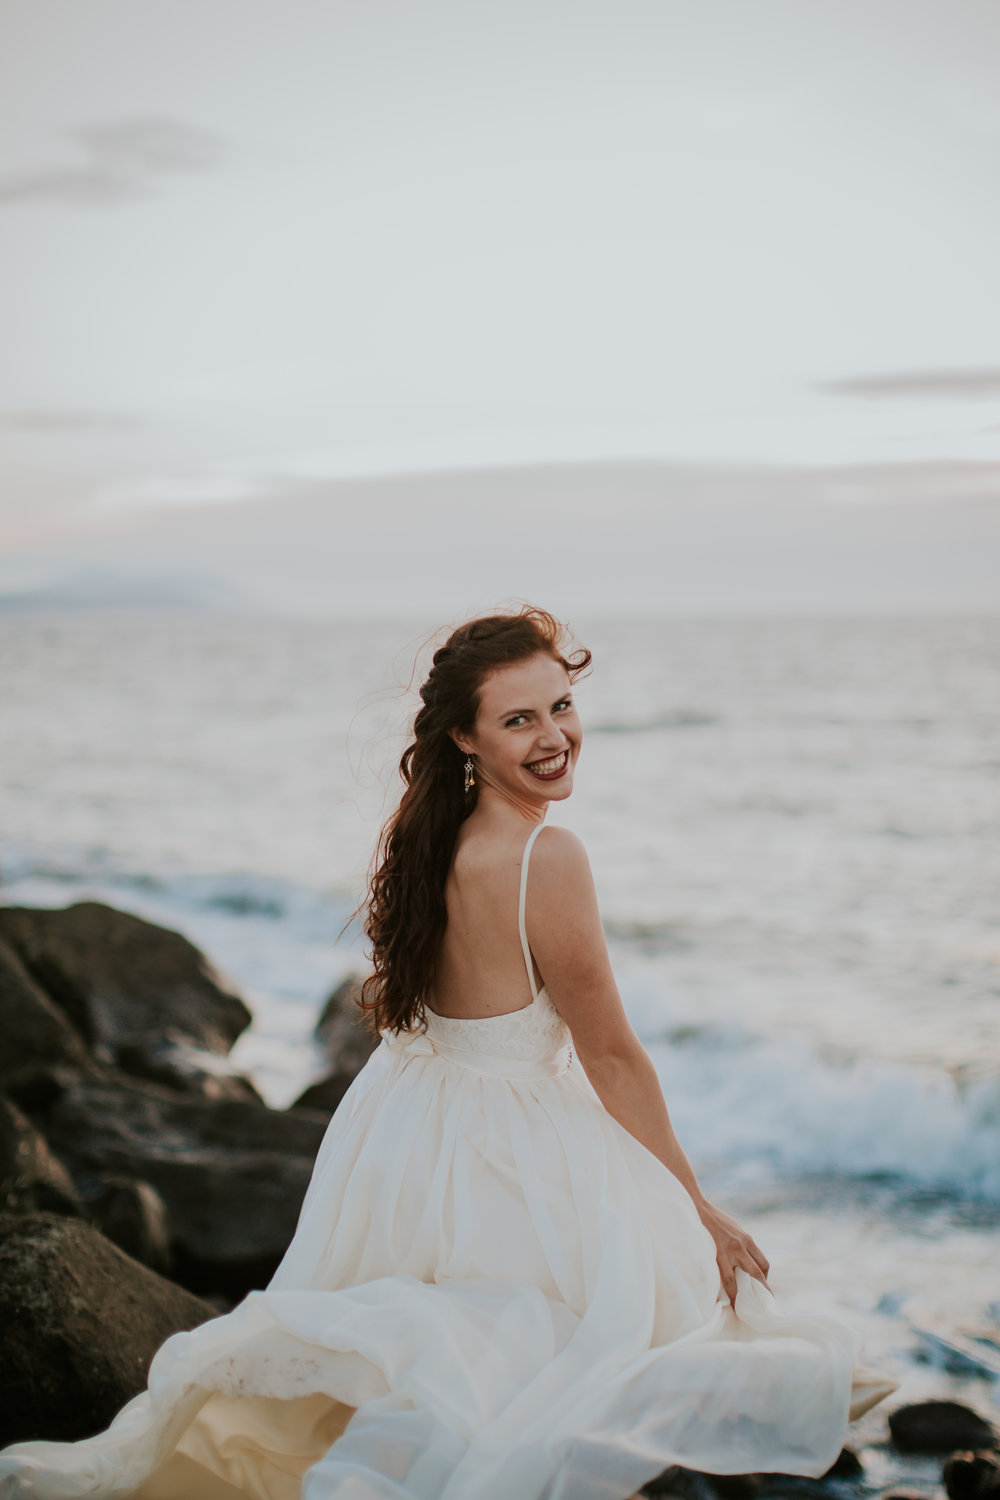 Port-Angeles-Photographer-Olympic-Peninsula-Wedding-Ediz-Hook-bride-dress-Kayla-Dawn-Photography-Olympic-Peninsula-PNW-Photographer-Portrait-Portraiture-Natural-Golden-Hour-Beach (3).jpg